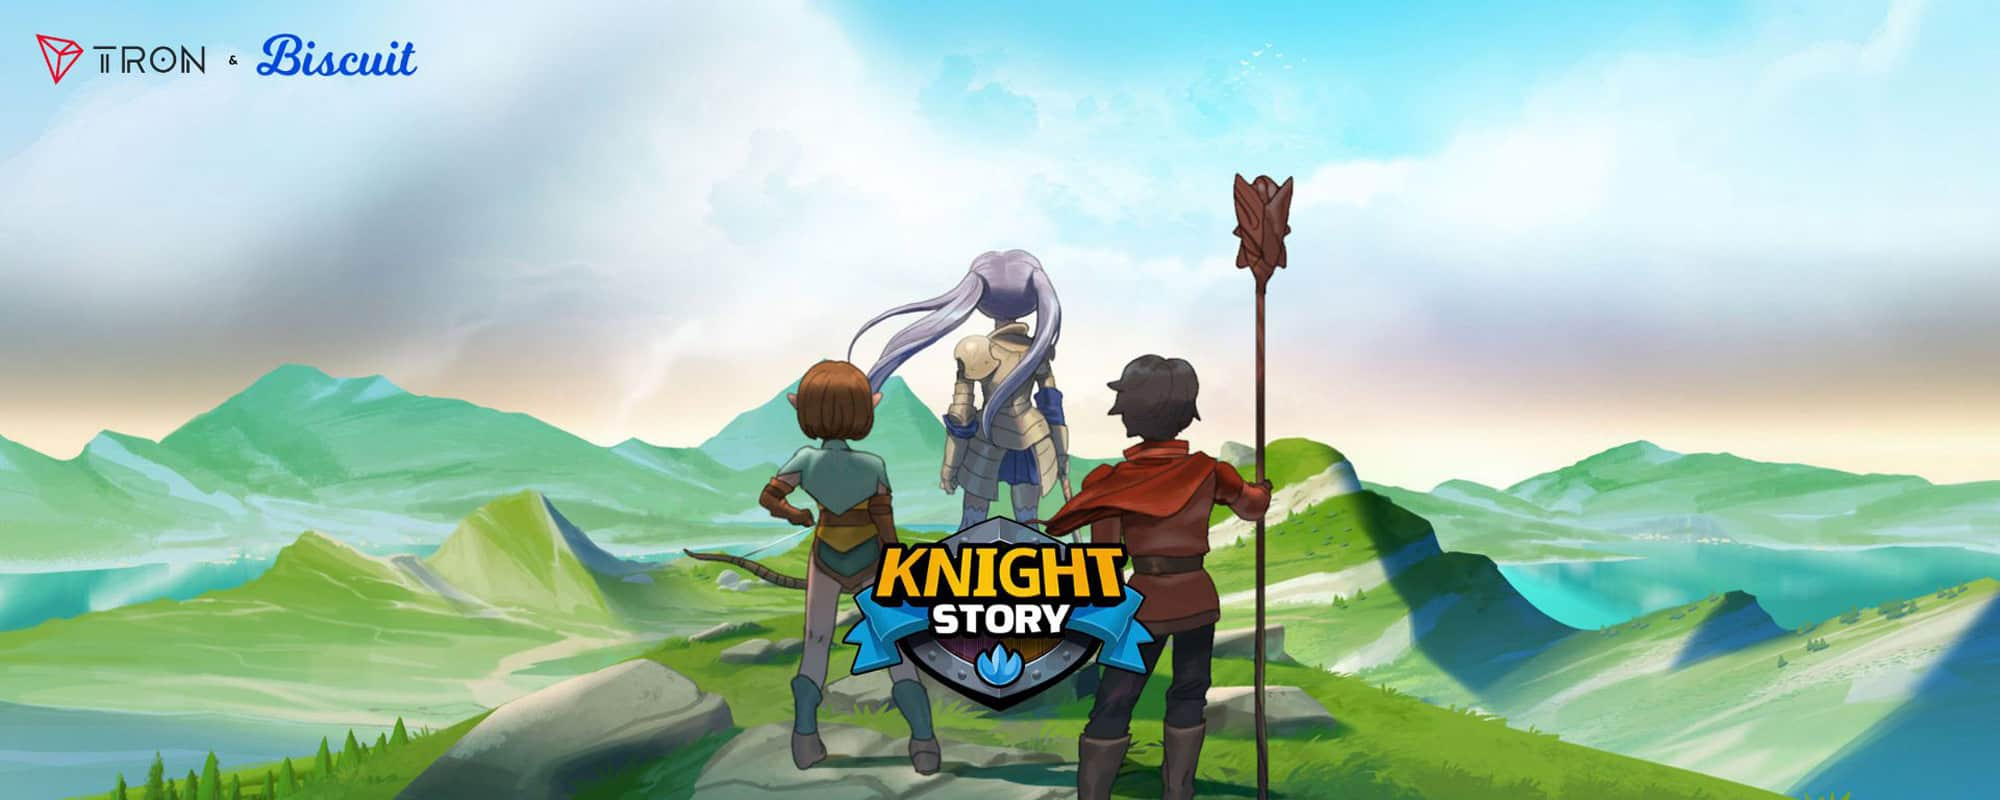 Knight Story partnership with TRON